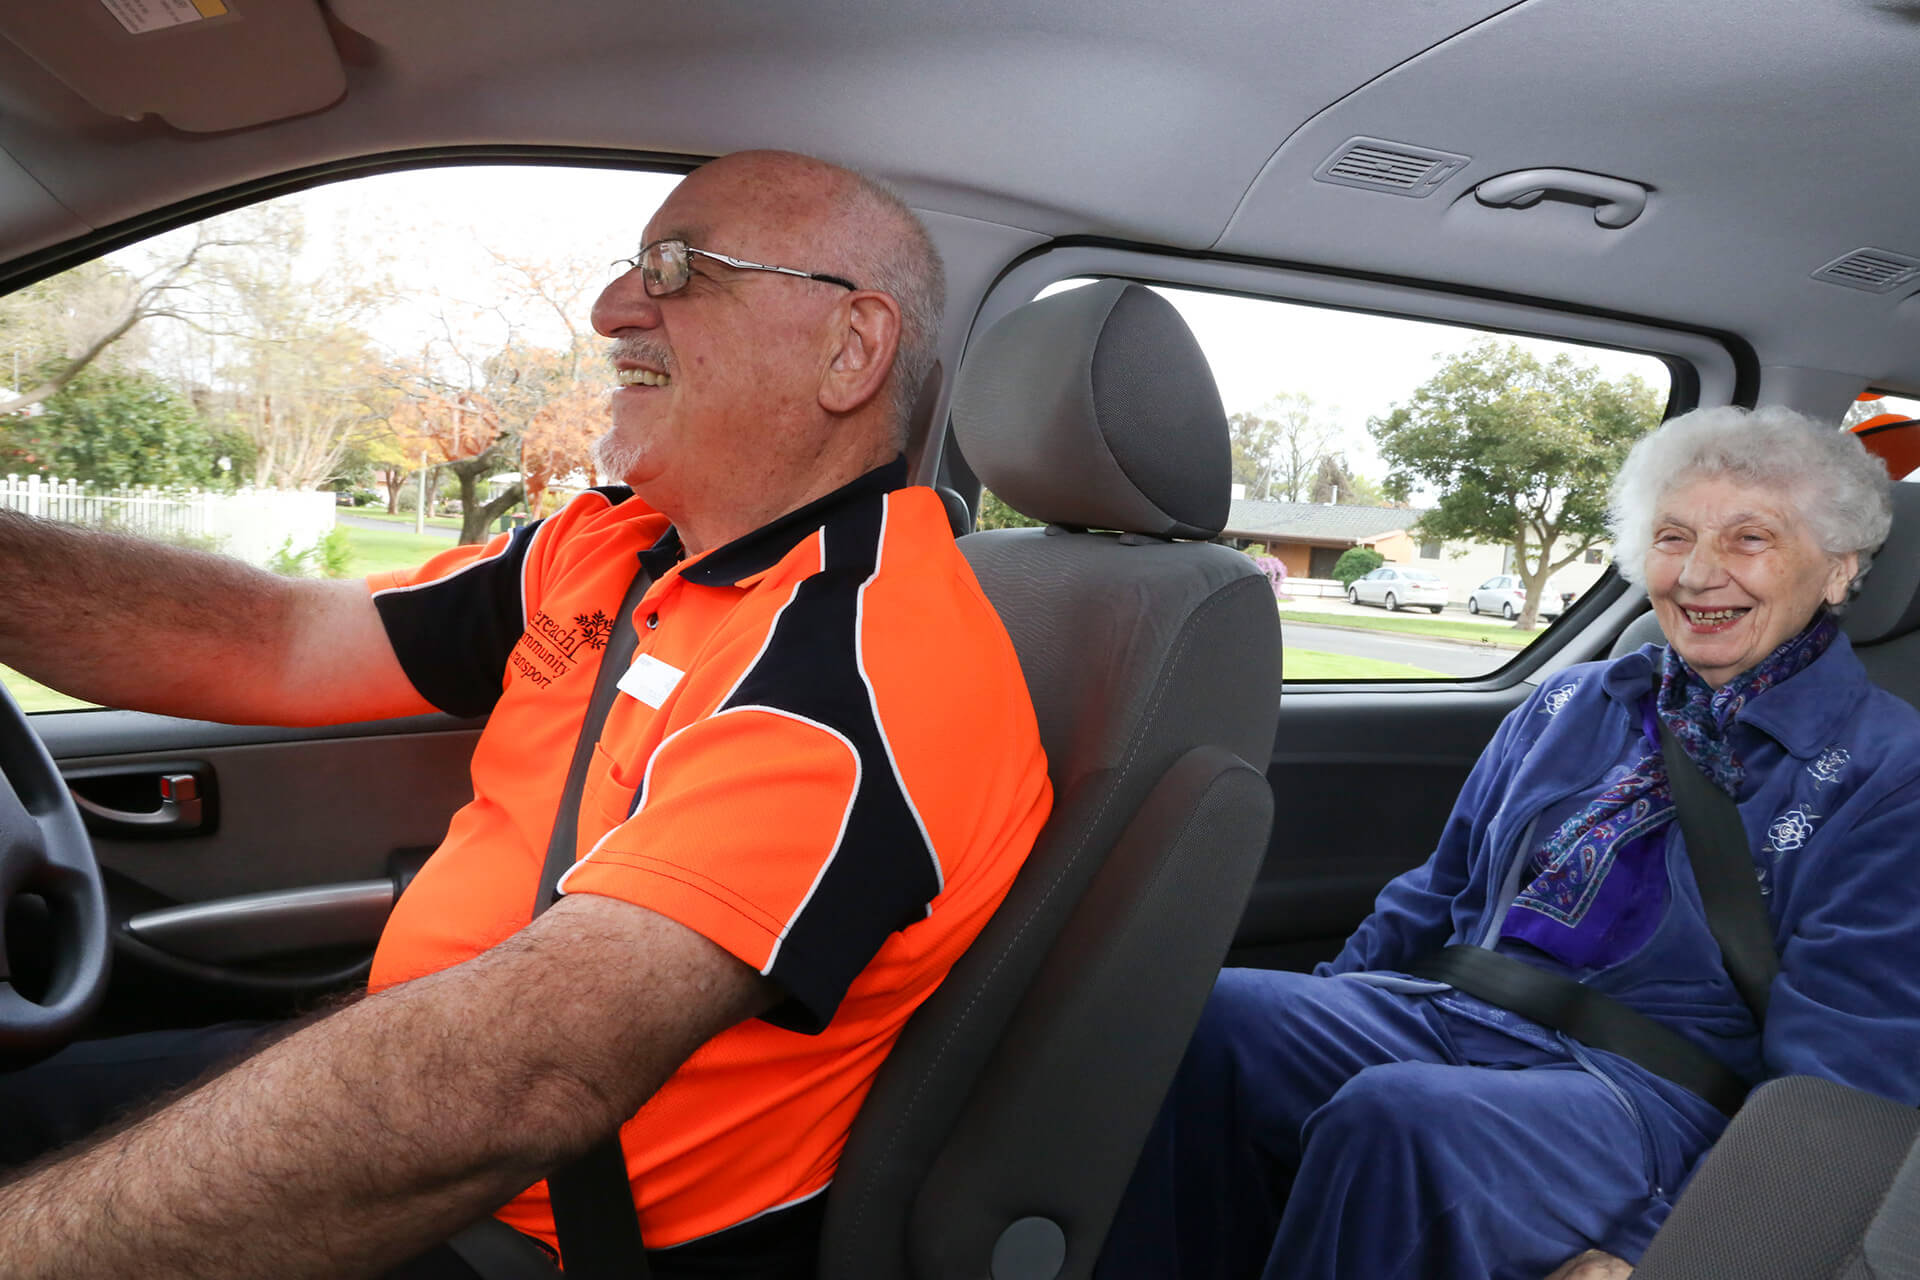 A Community Transport Driver sits in the driver's seat of a vehicle with an older woman in the driver side rear passengers seat